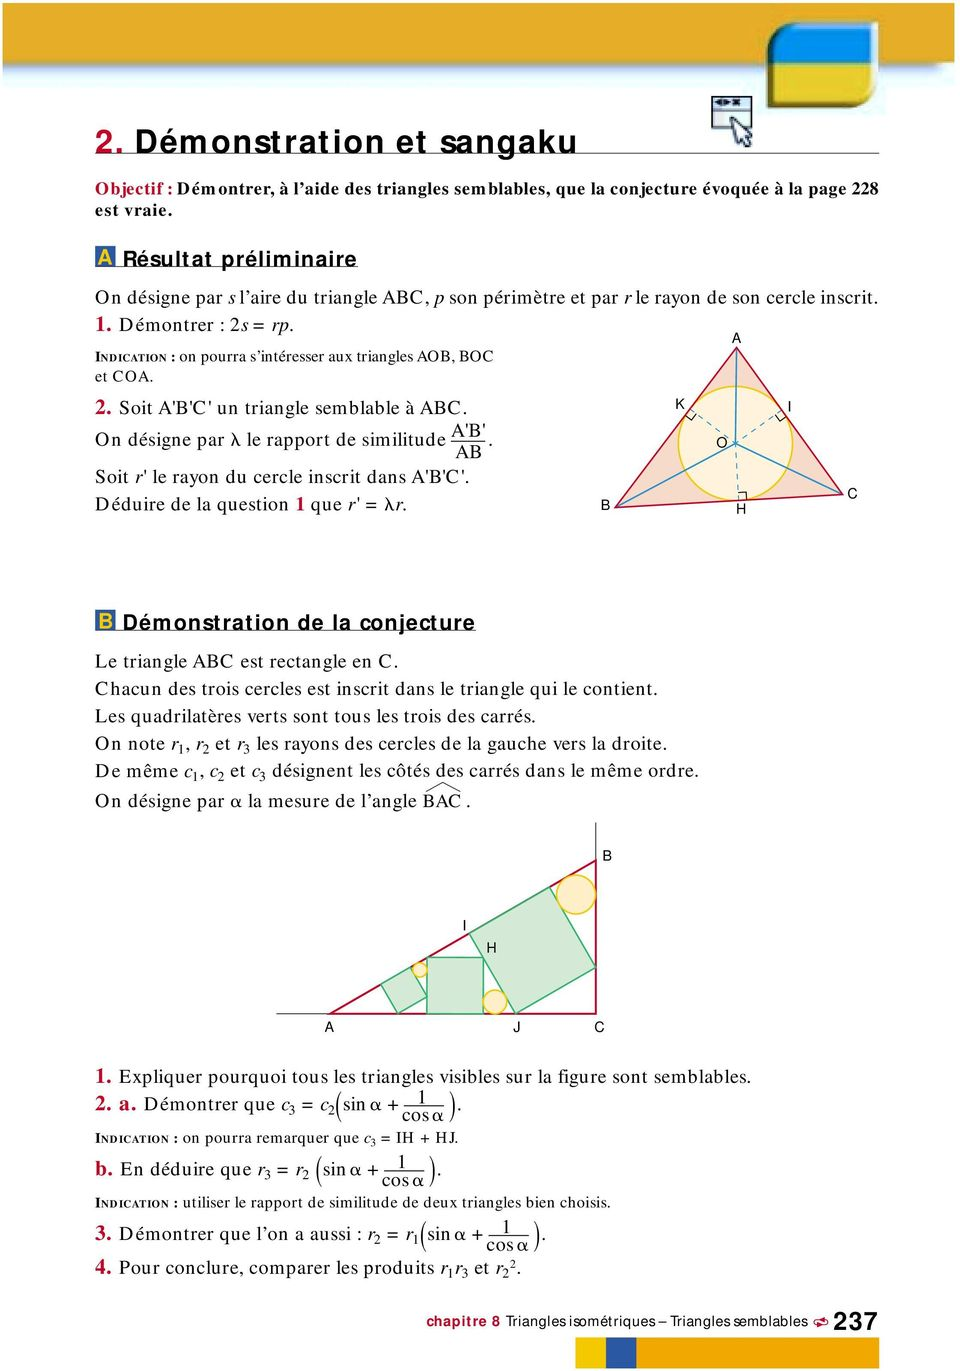 On désigne par le rapport de similitude ''. Soit r' le rayon du cercle inscrit dans '''. éduire de la question 1 que r' = r. K O I émonstration de la conjecture Le triangle est rectangle en.